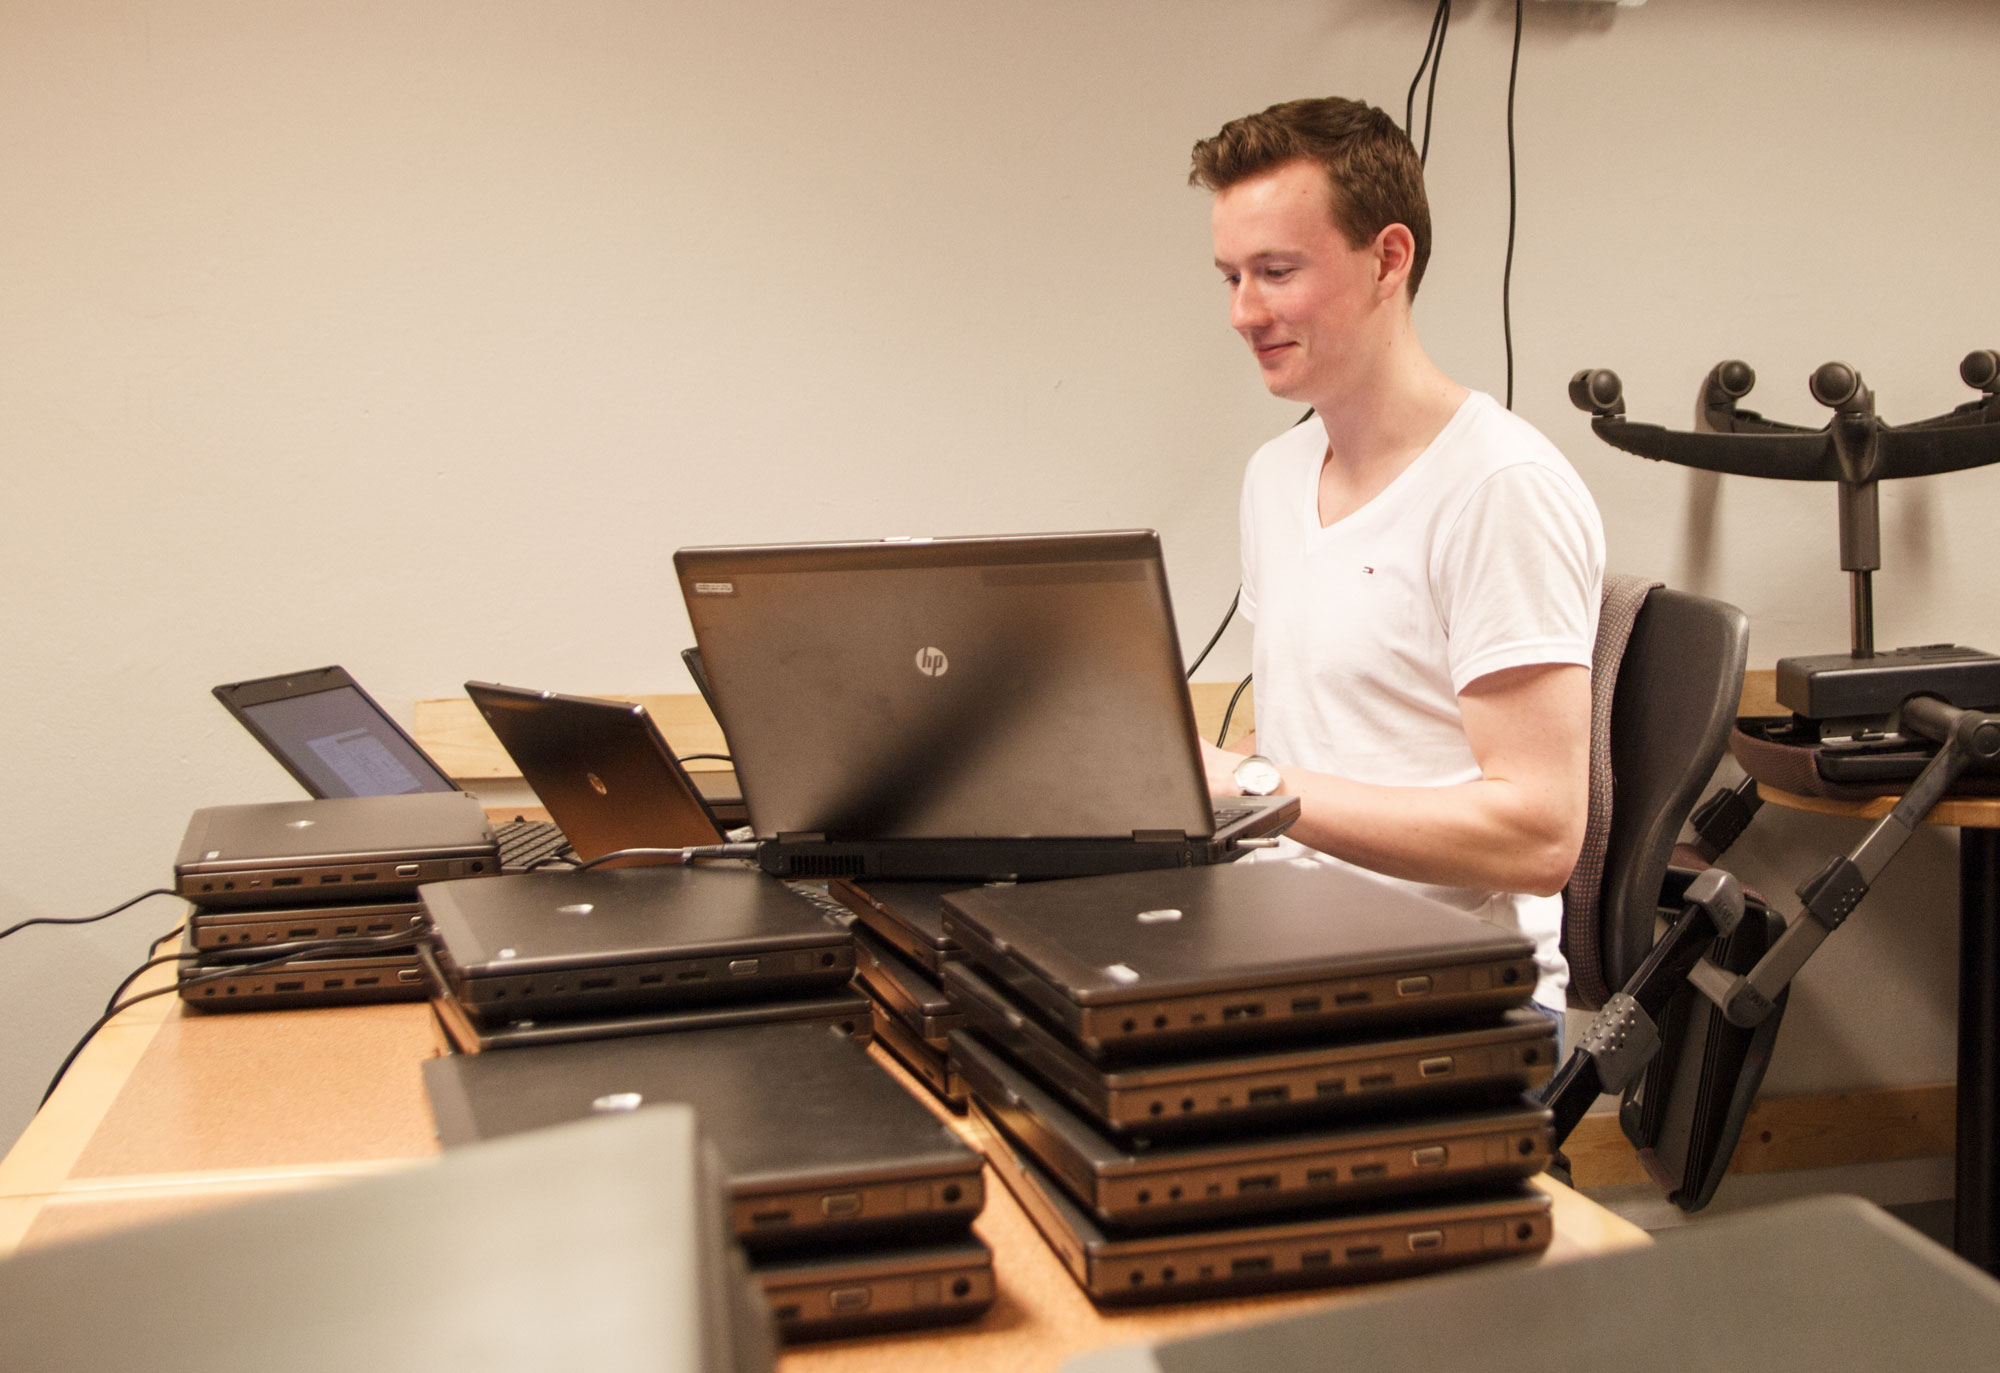 Daniel working with five computers at a time.